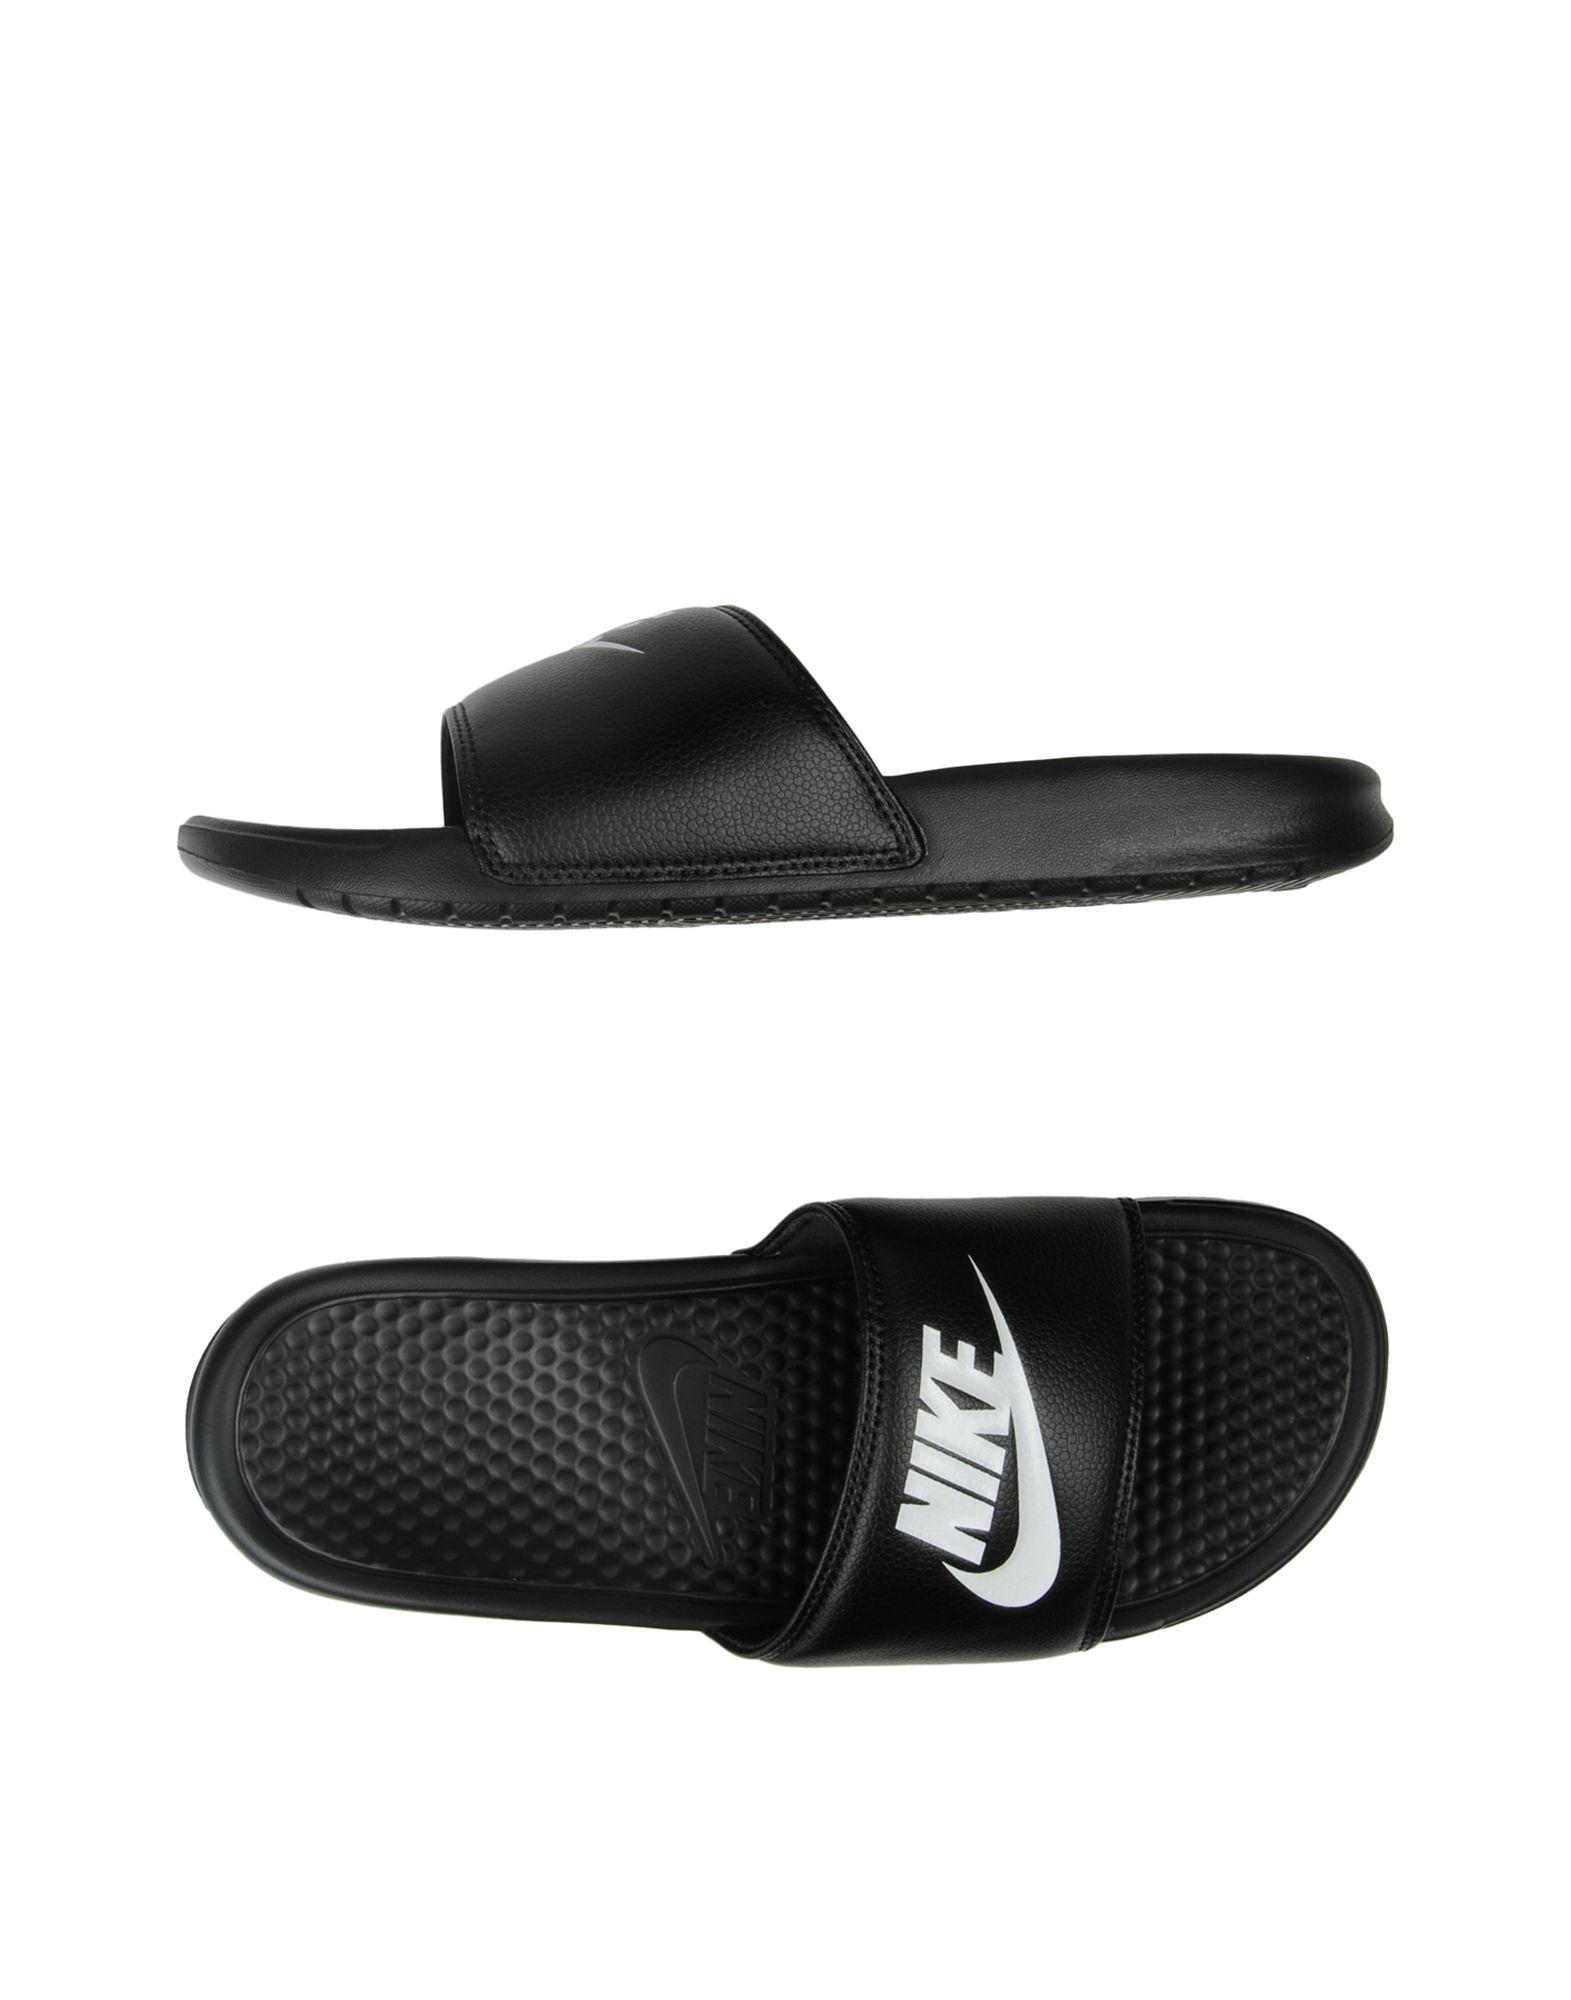 3a870fdfc Nike Sandals in Black for Men - Save 23% - Lyst